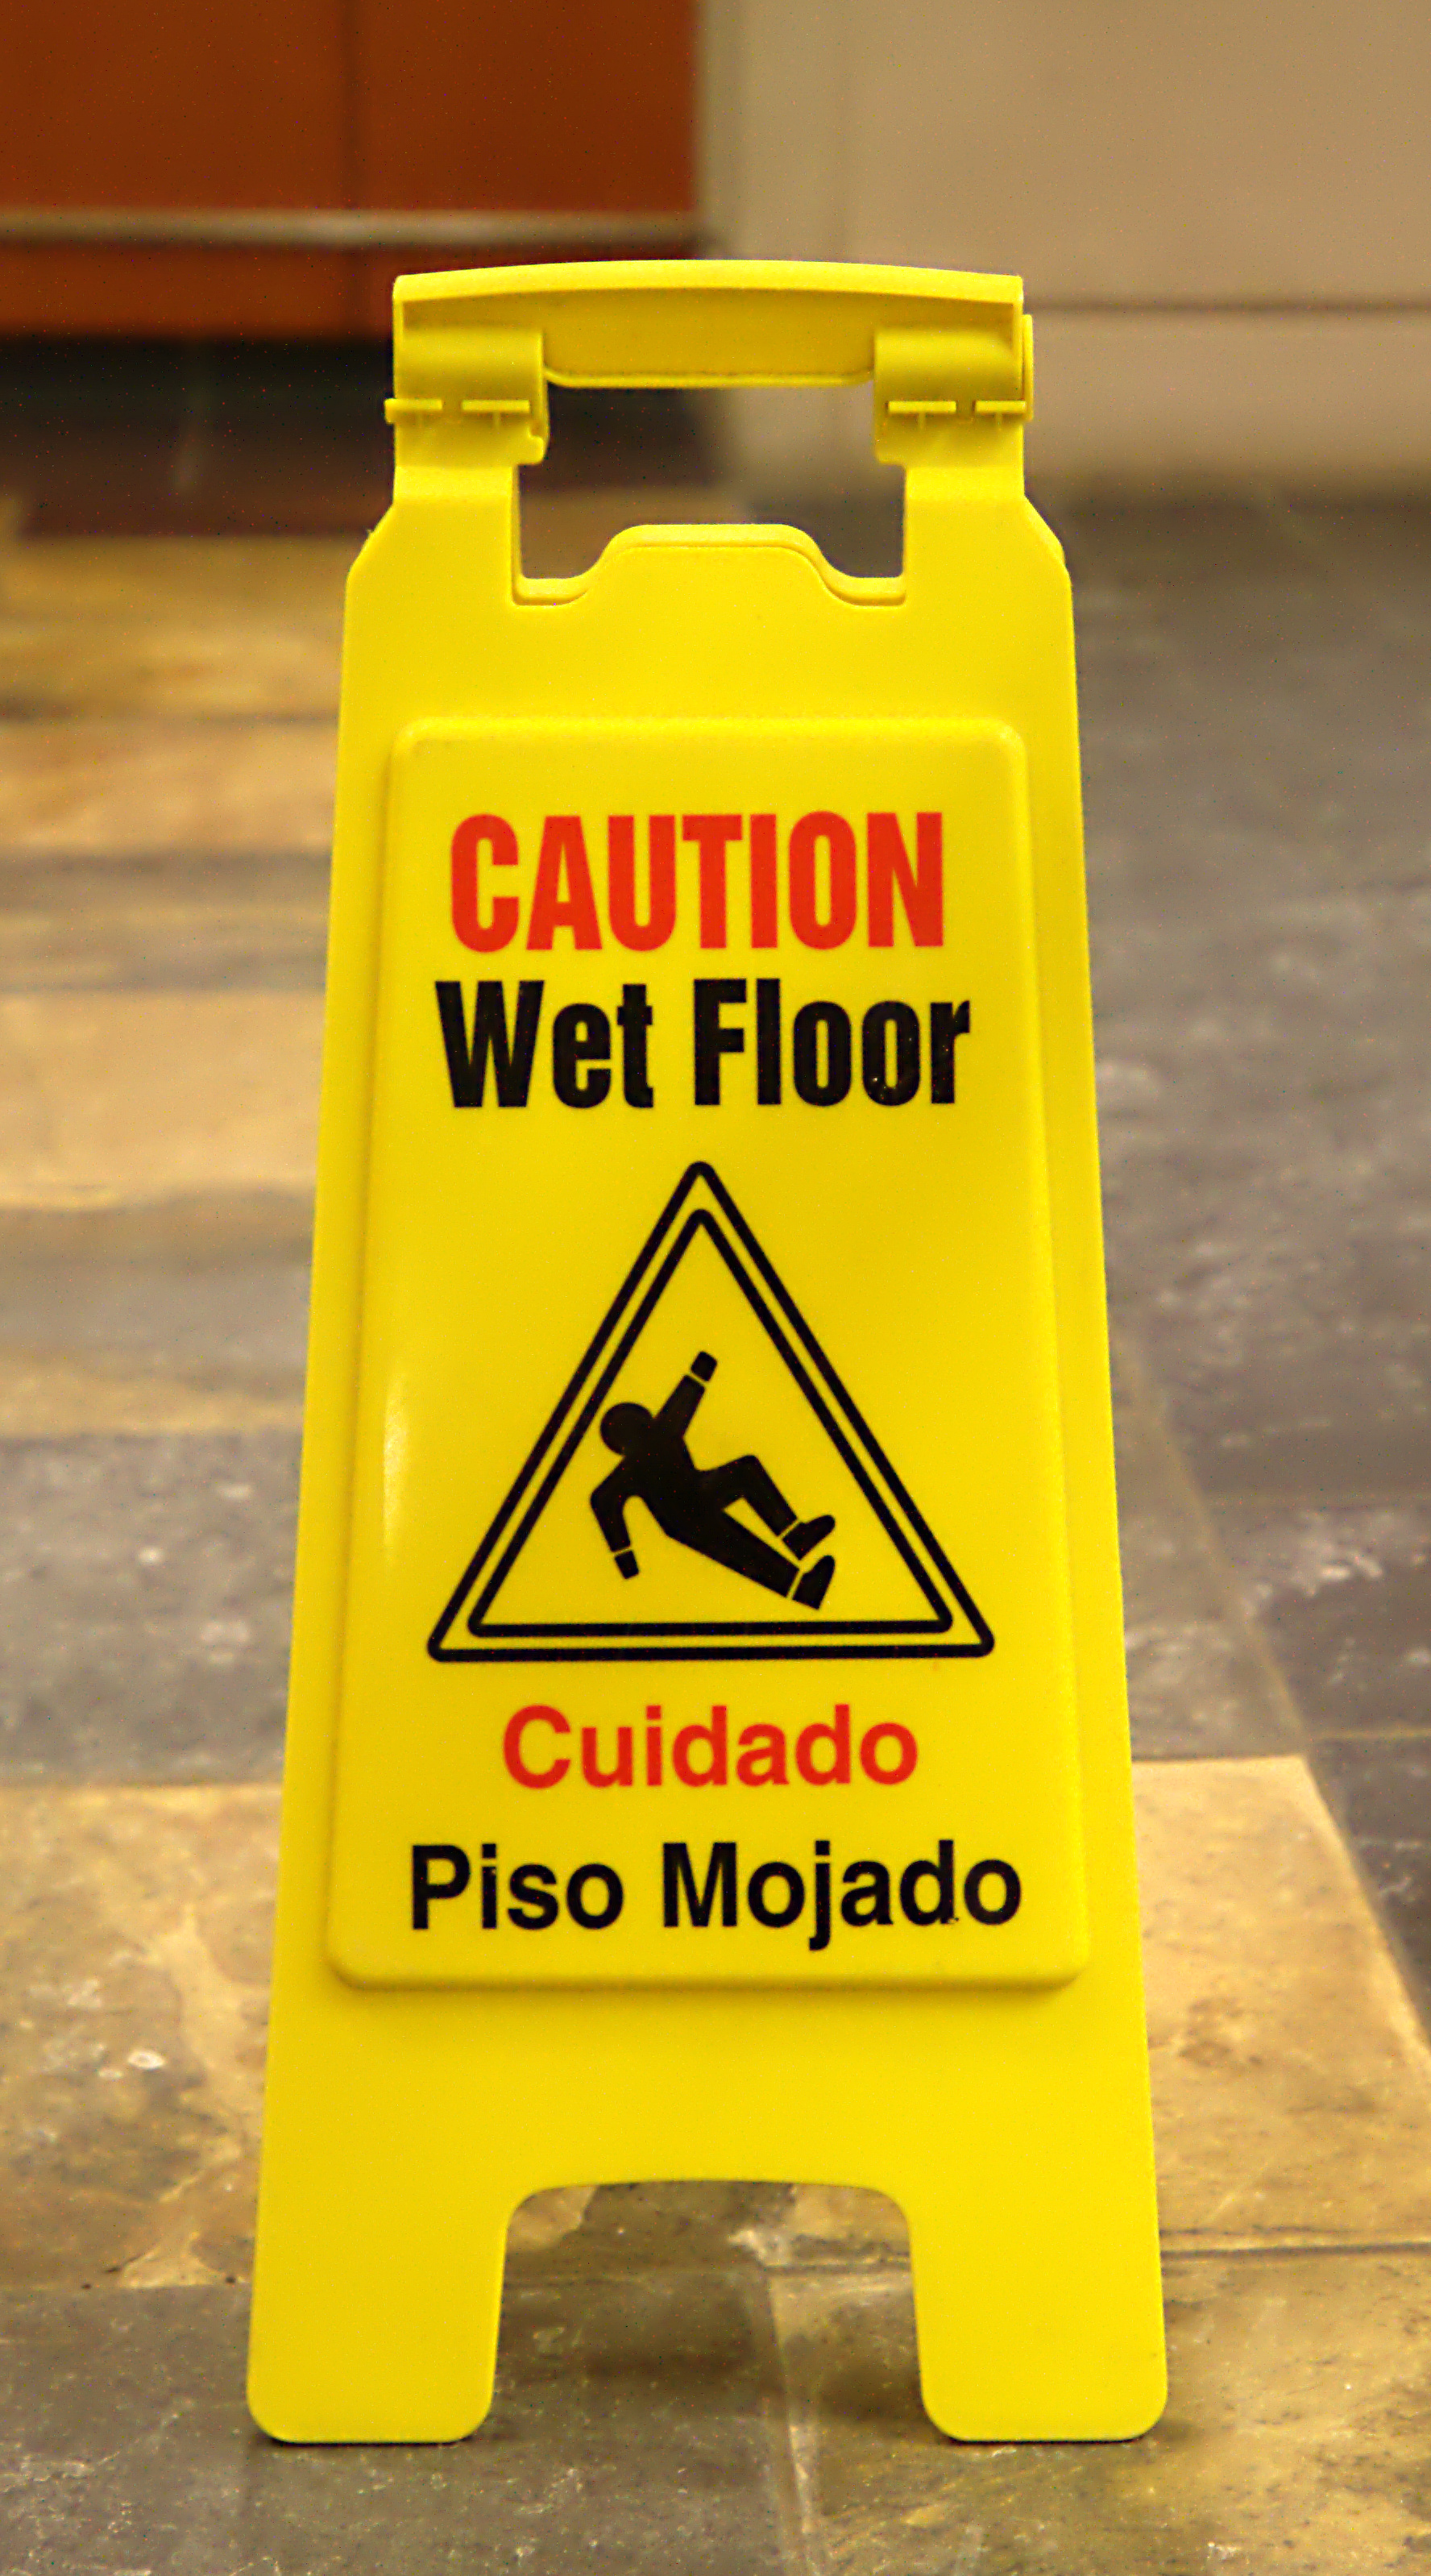 image equipment sign workplace signs warning parrs floor wet cone banana